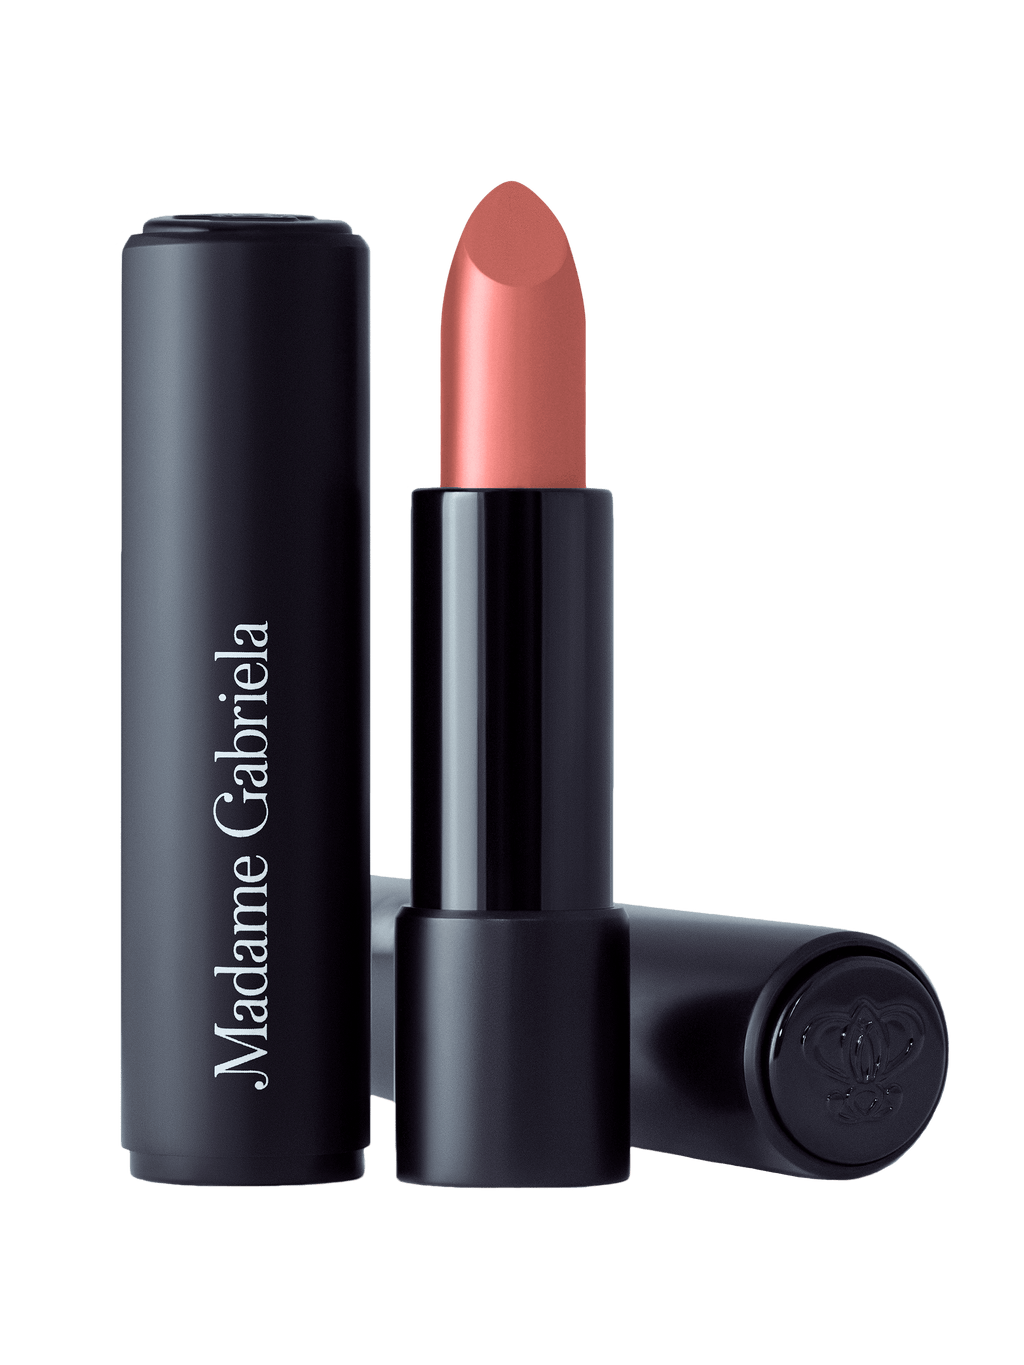 Madame Gabriela Paris at 1PM Nude All-Natural Clean Beauty Lipstick